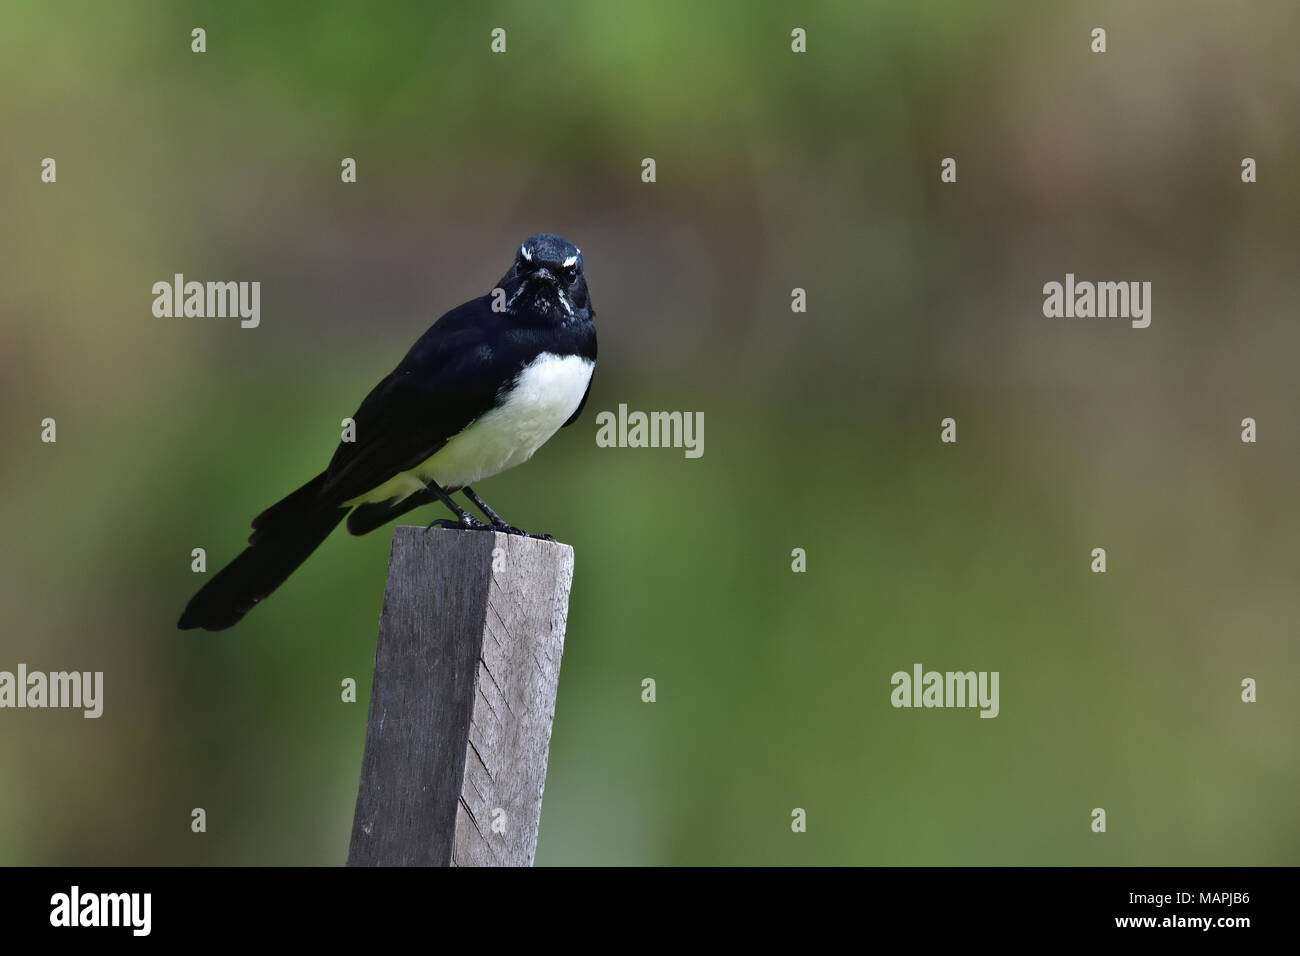 An Australian, Queensland Willie Wagtail, Rhipidura leucophrys resting on a wooden post Stock Photo